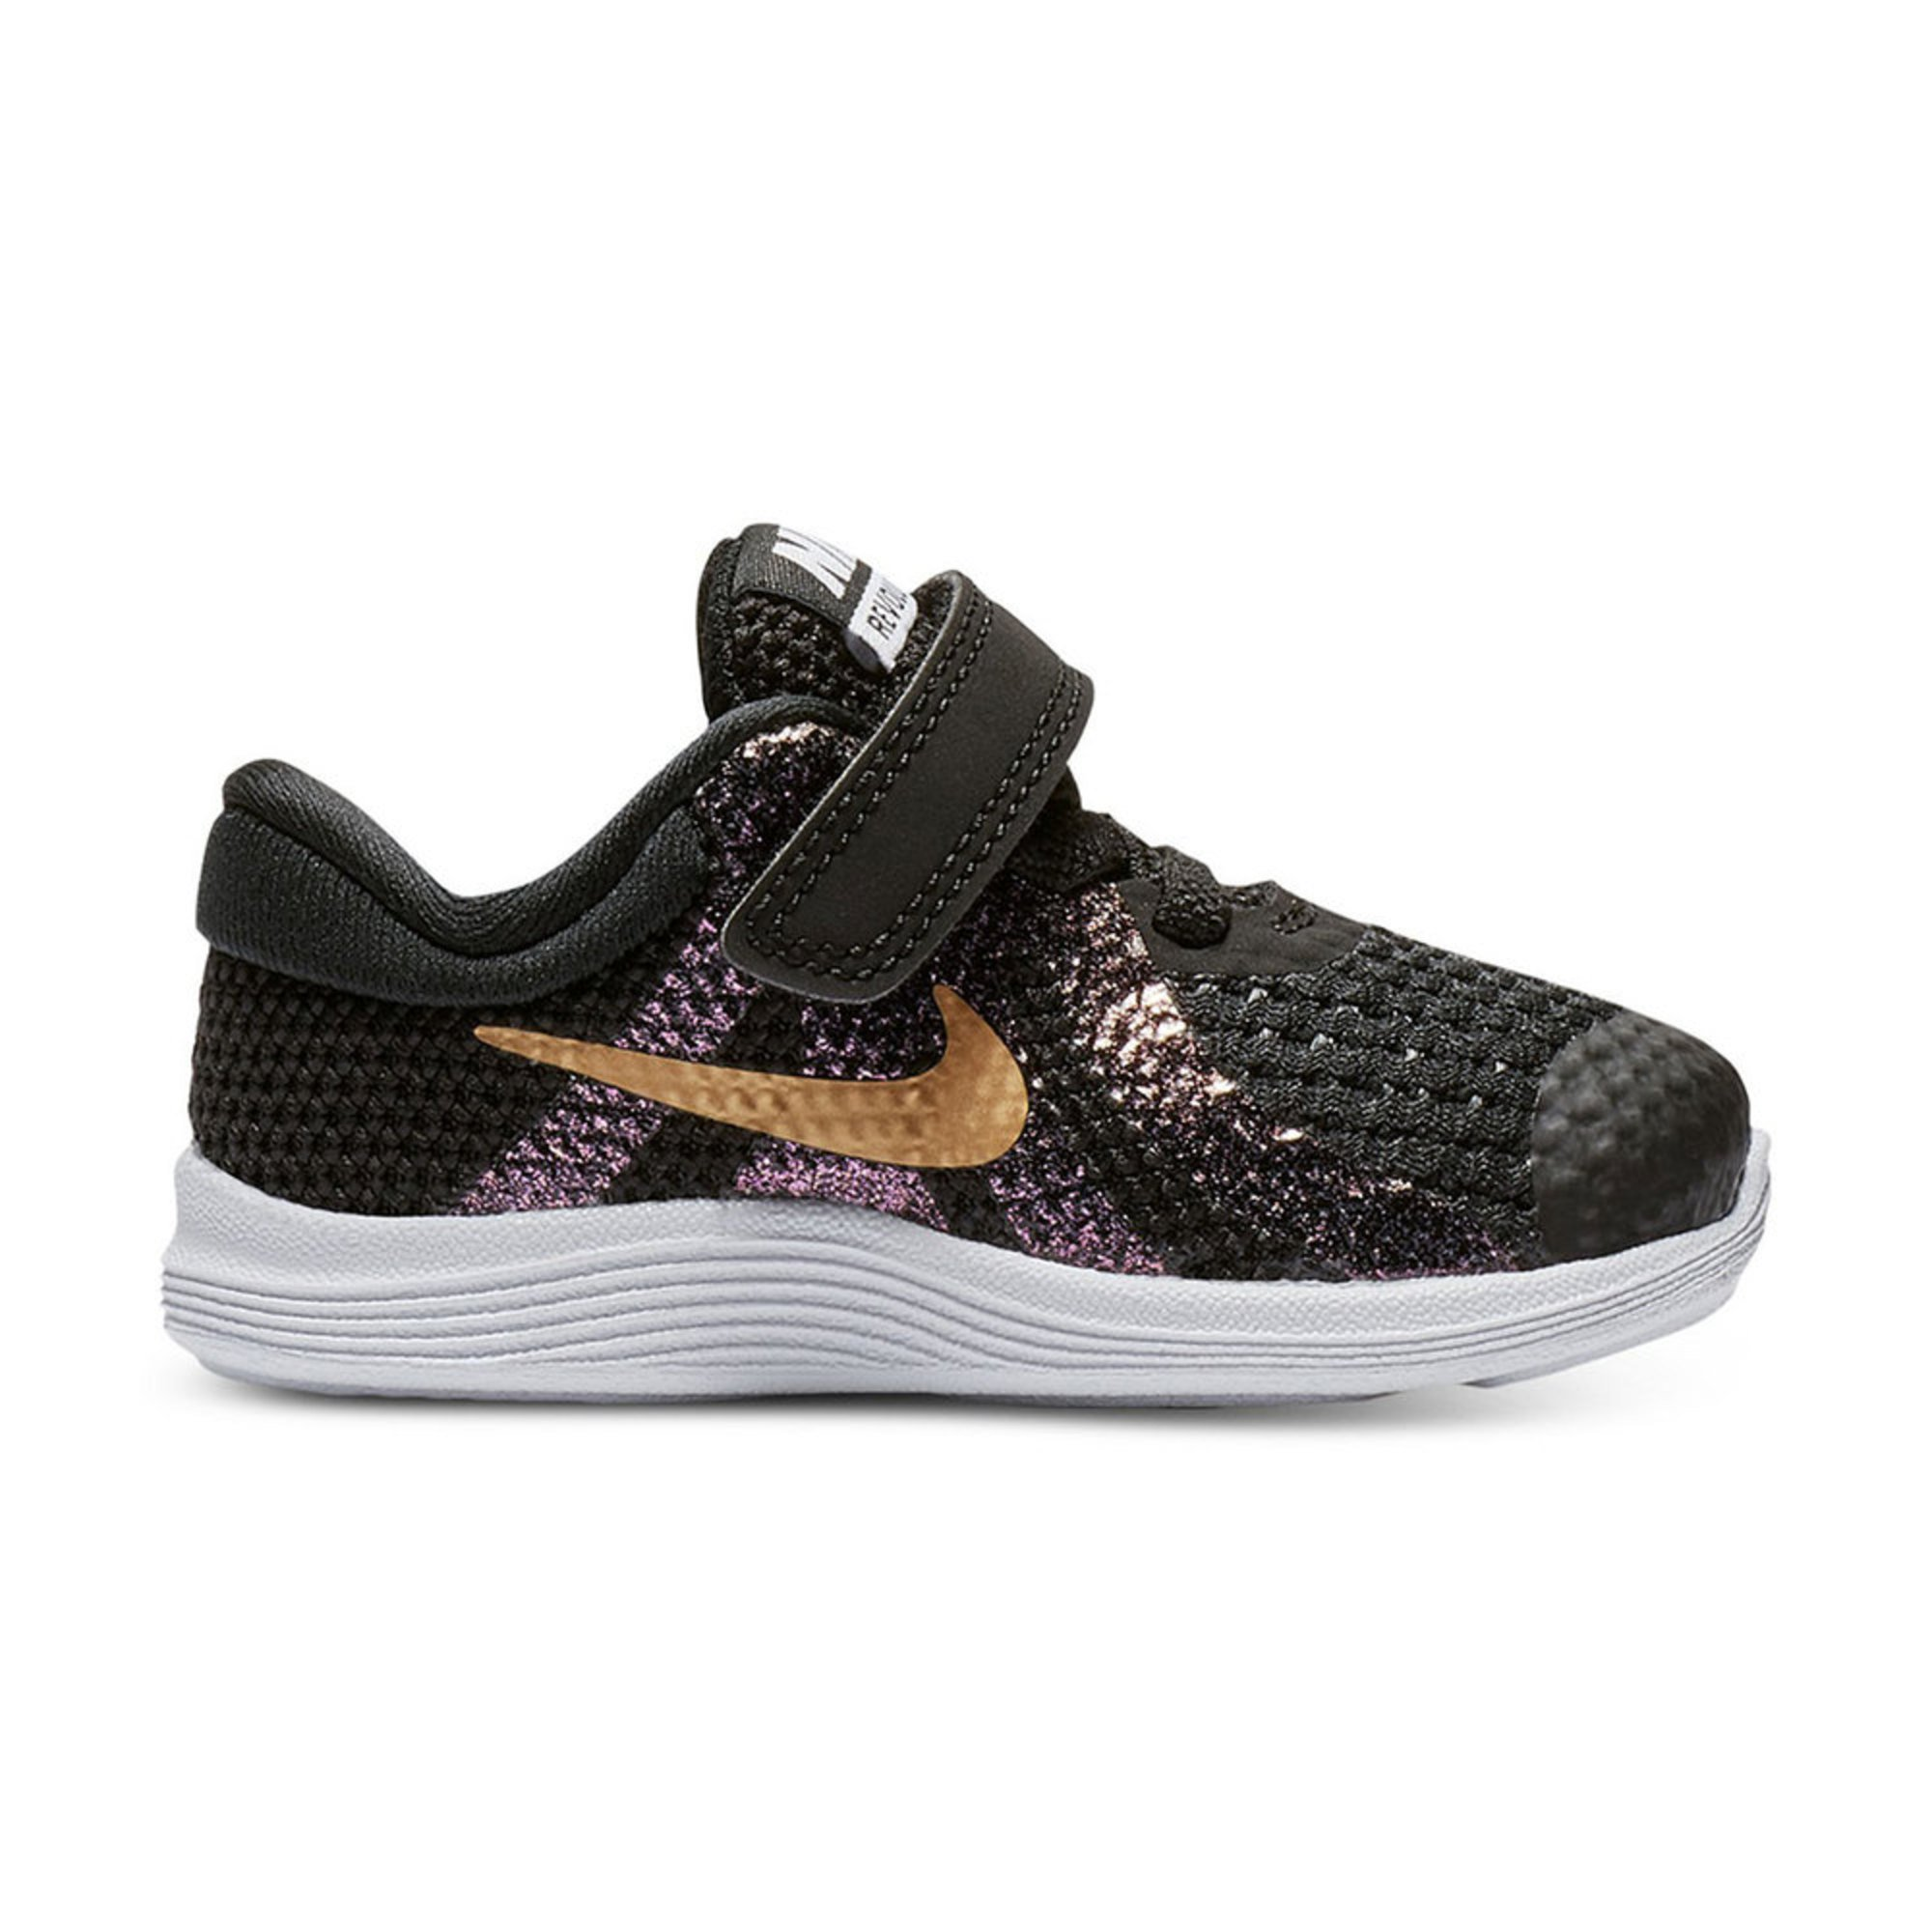 3bc3eaba37a7f Nike. Nike Girls Revolution 4 Shield Running Shoe (Infant Toddler)